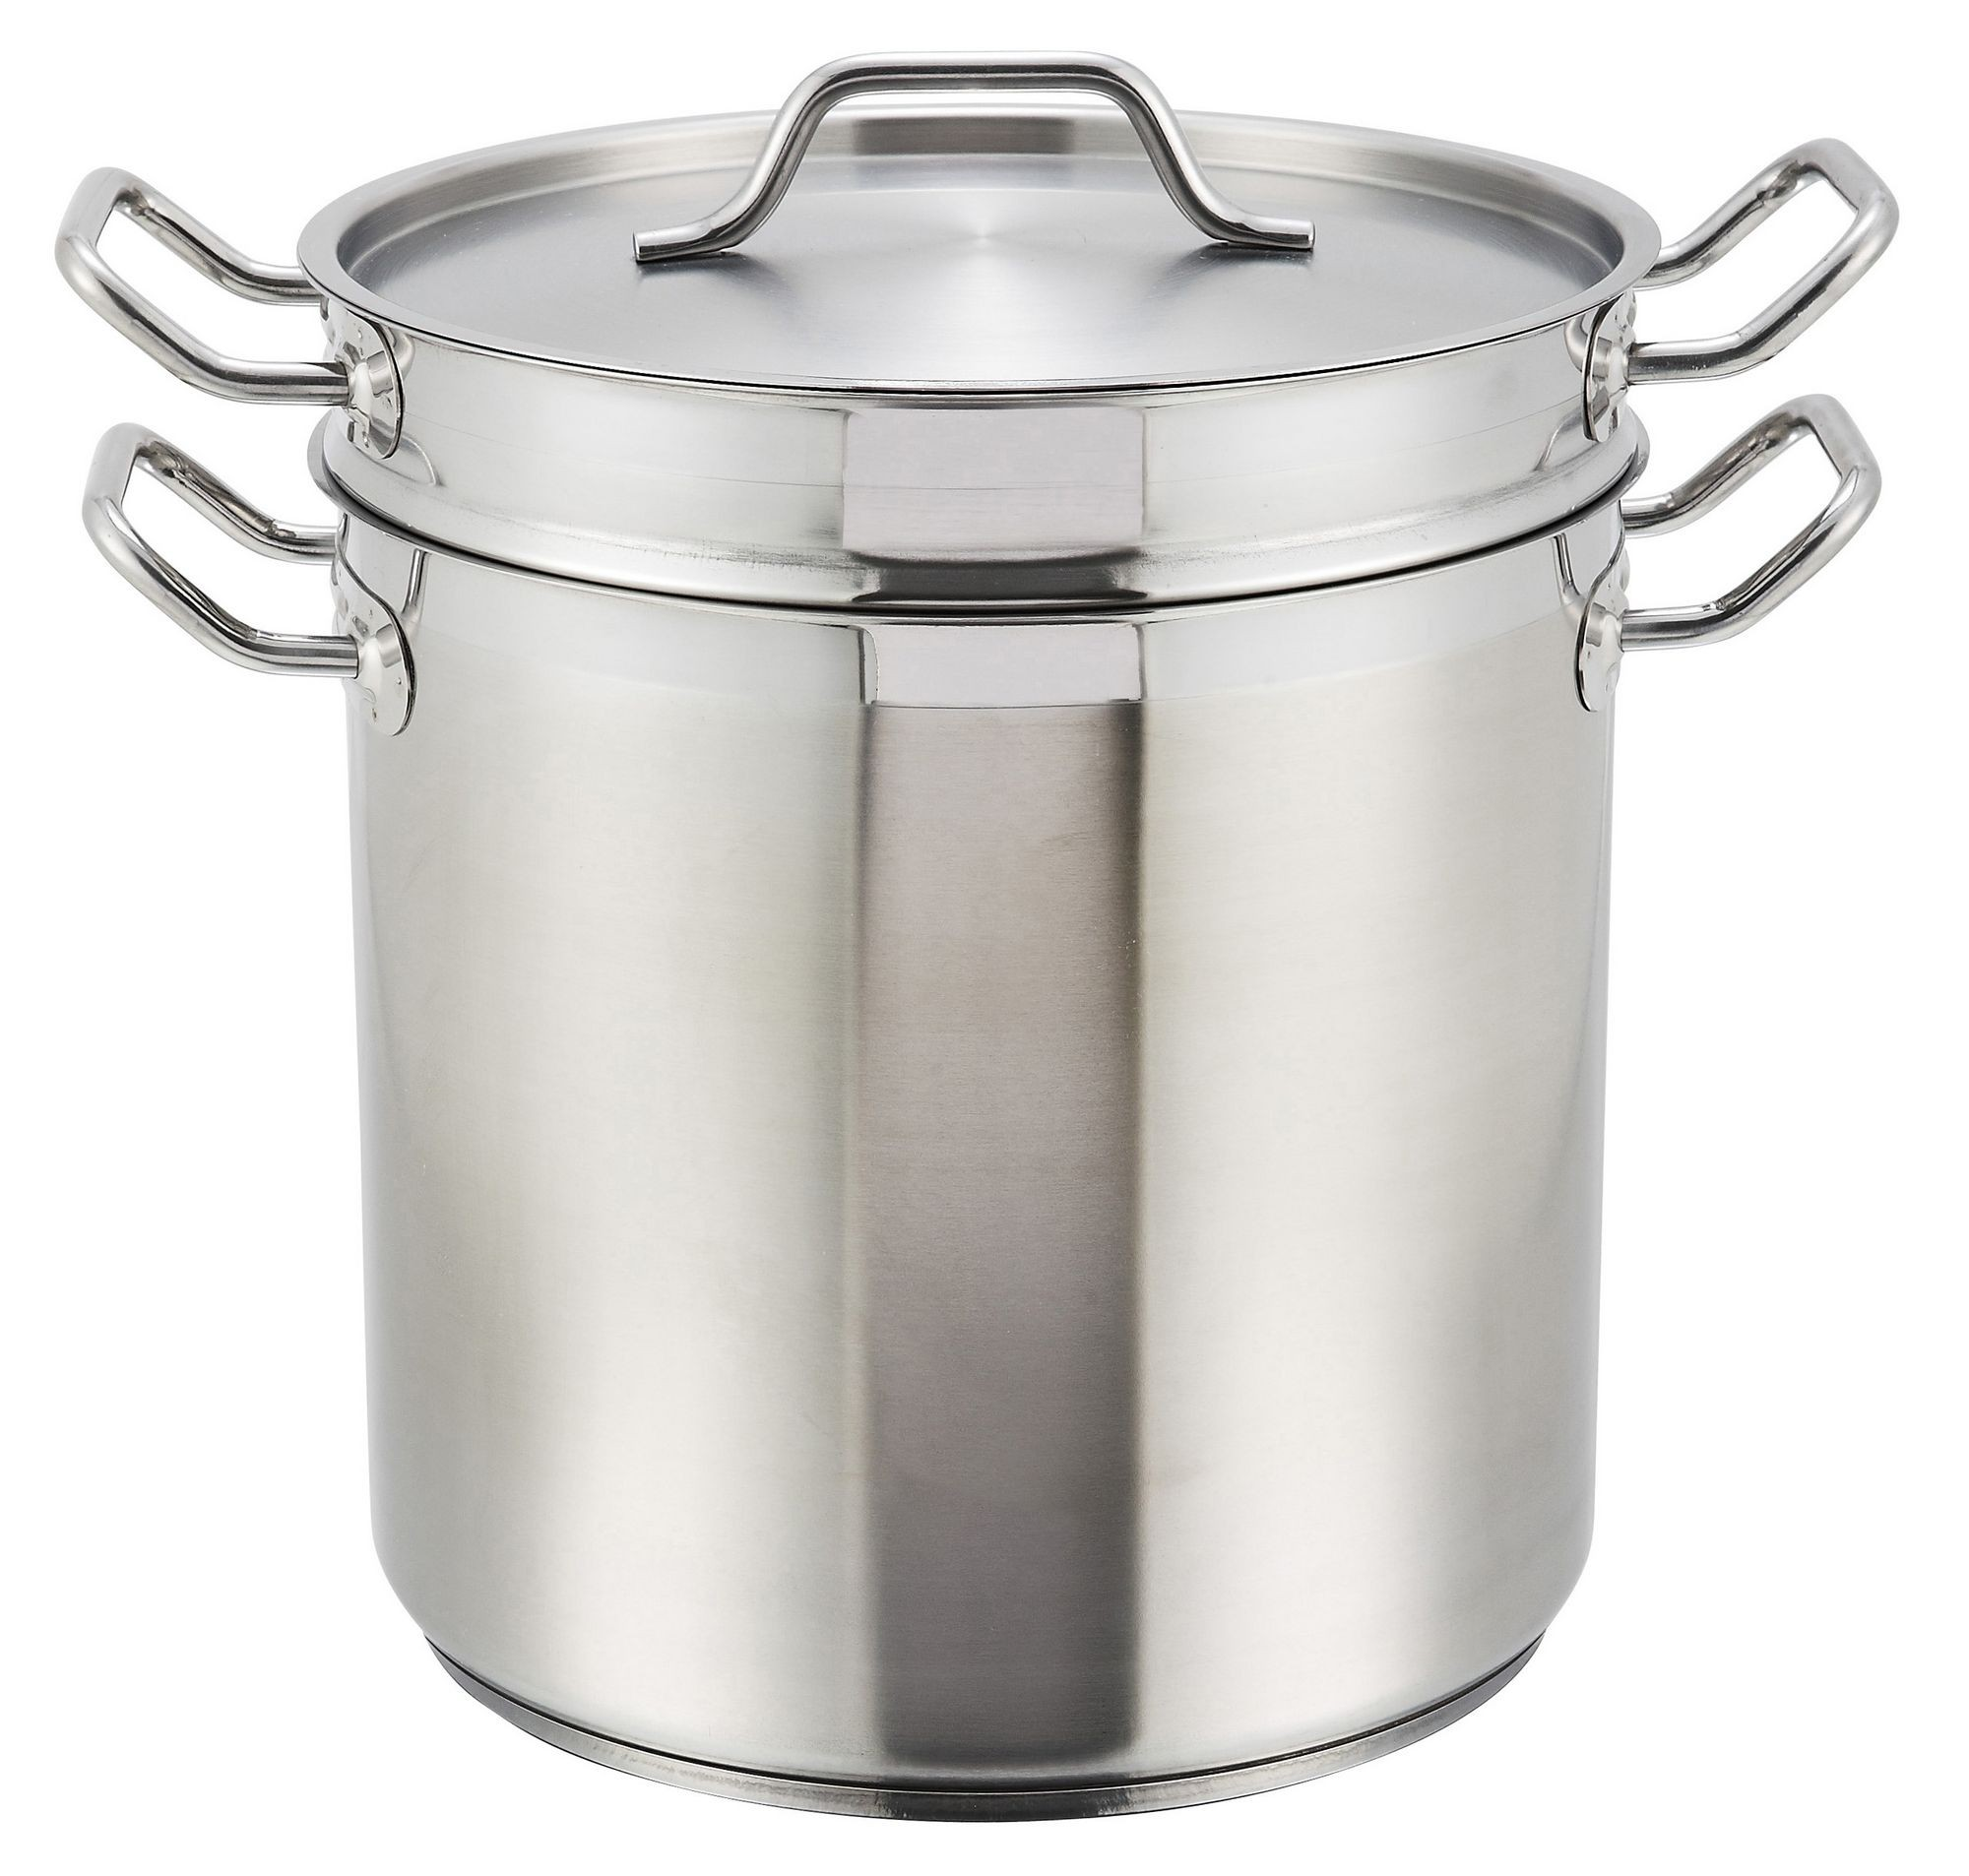 Stainless Steel 8-Qt Master Cook Steamer/Pasta Cooker With Cover (5 mm aluminum core NSF)